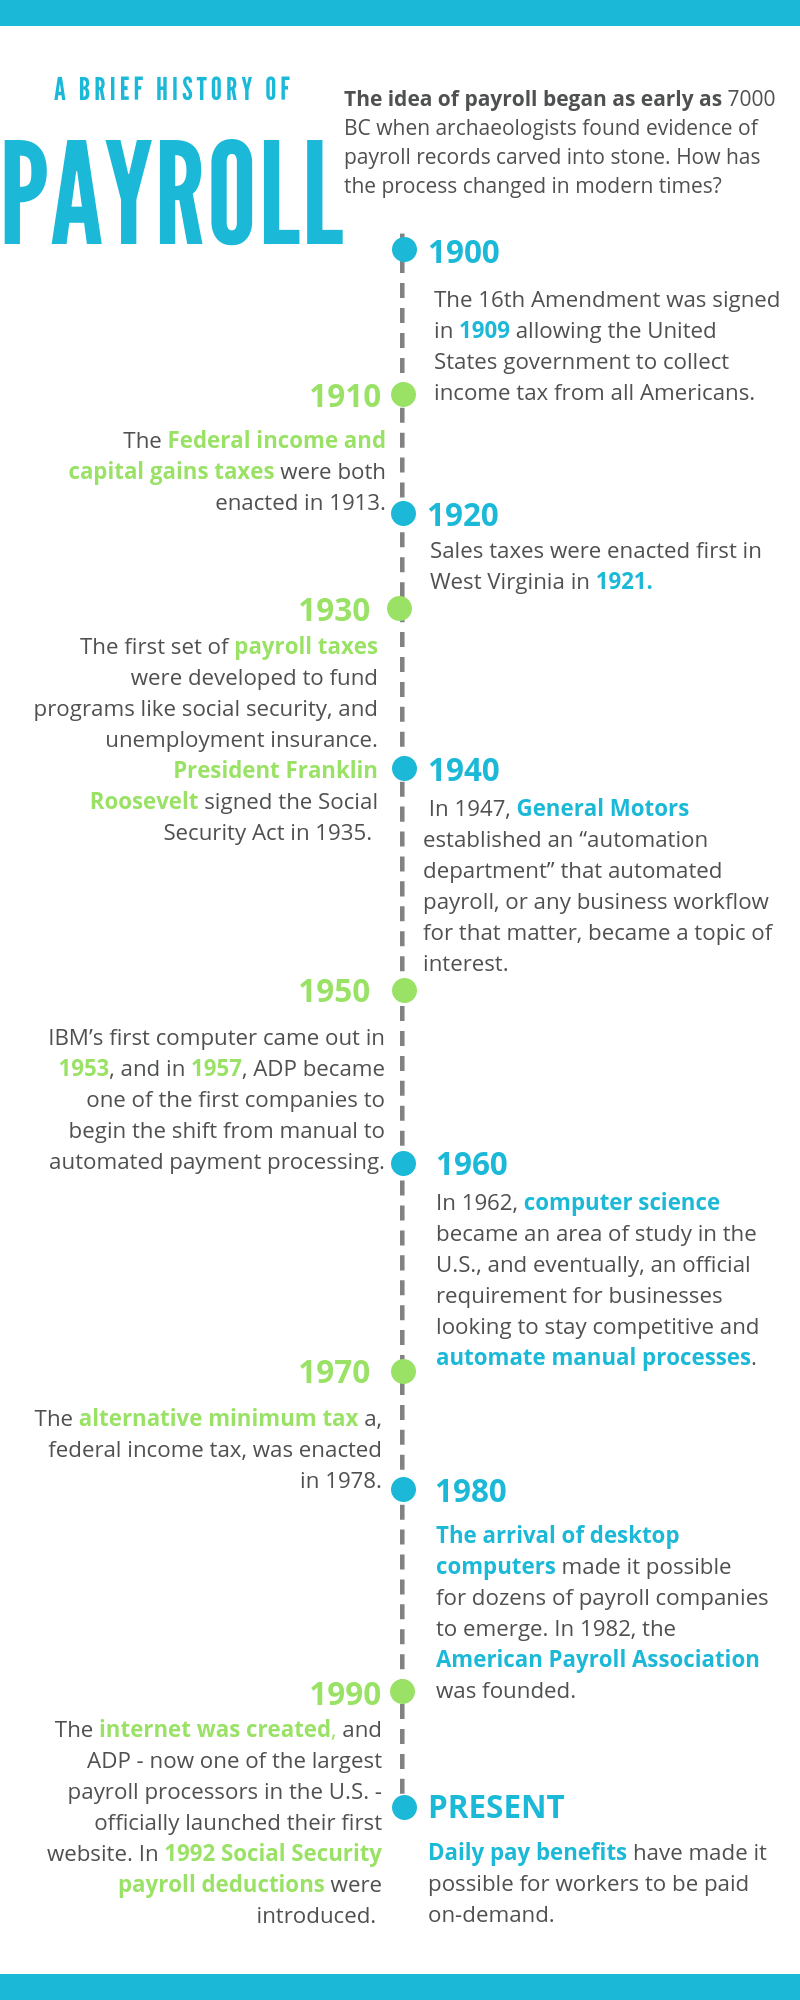 An infographic that details the history of payroll and payroll technology.